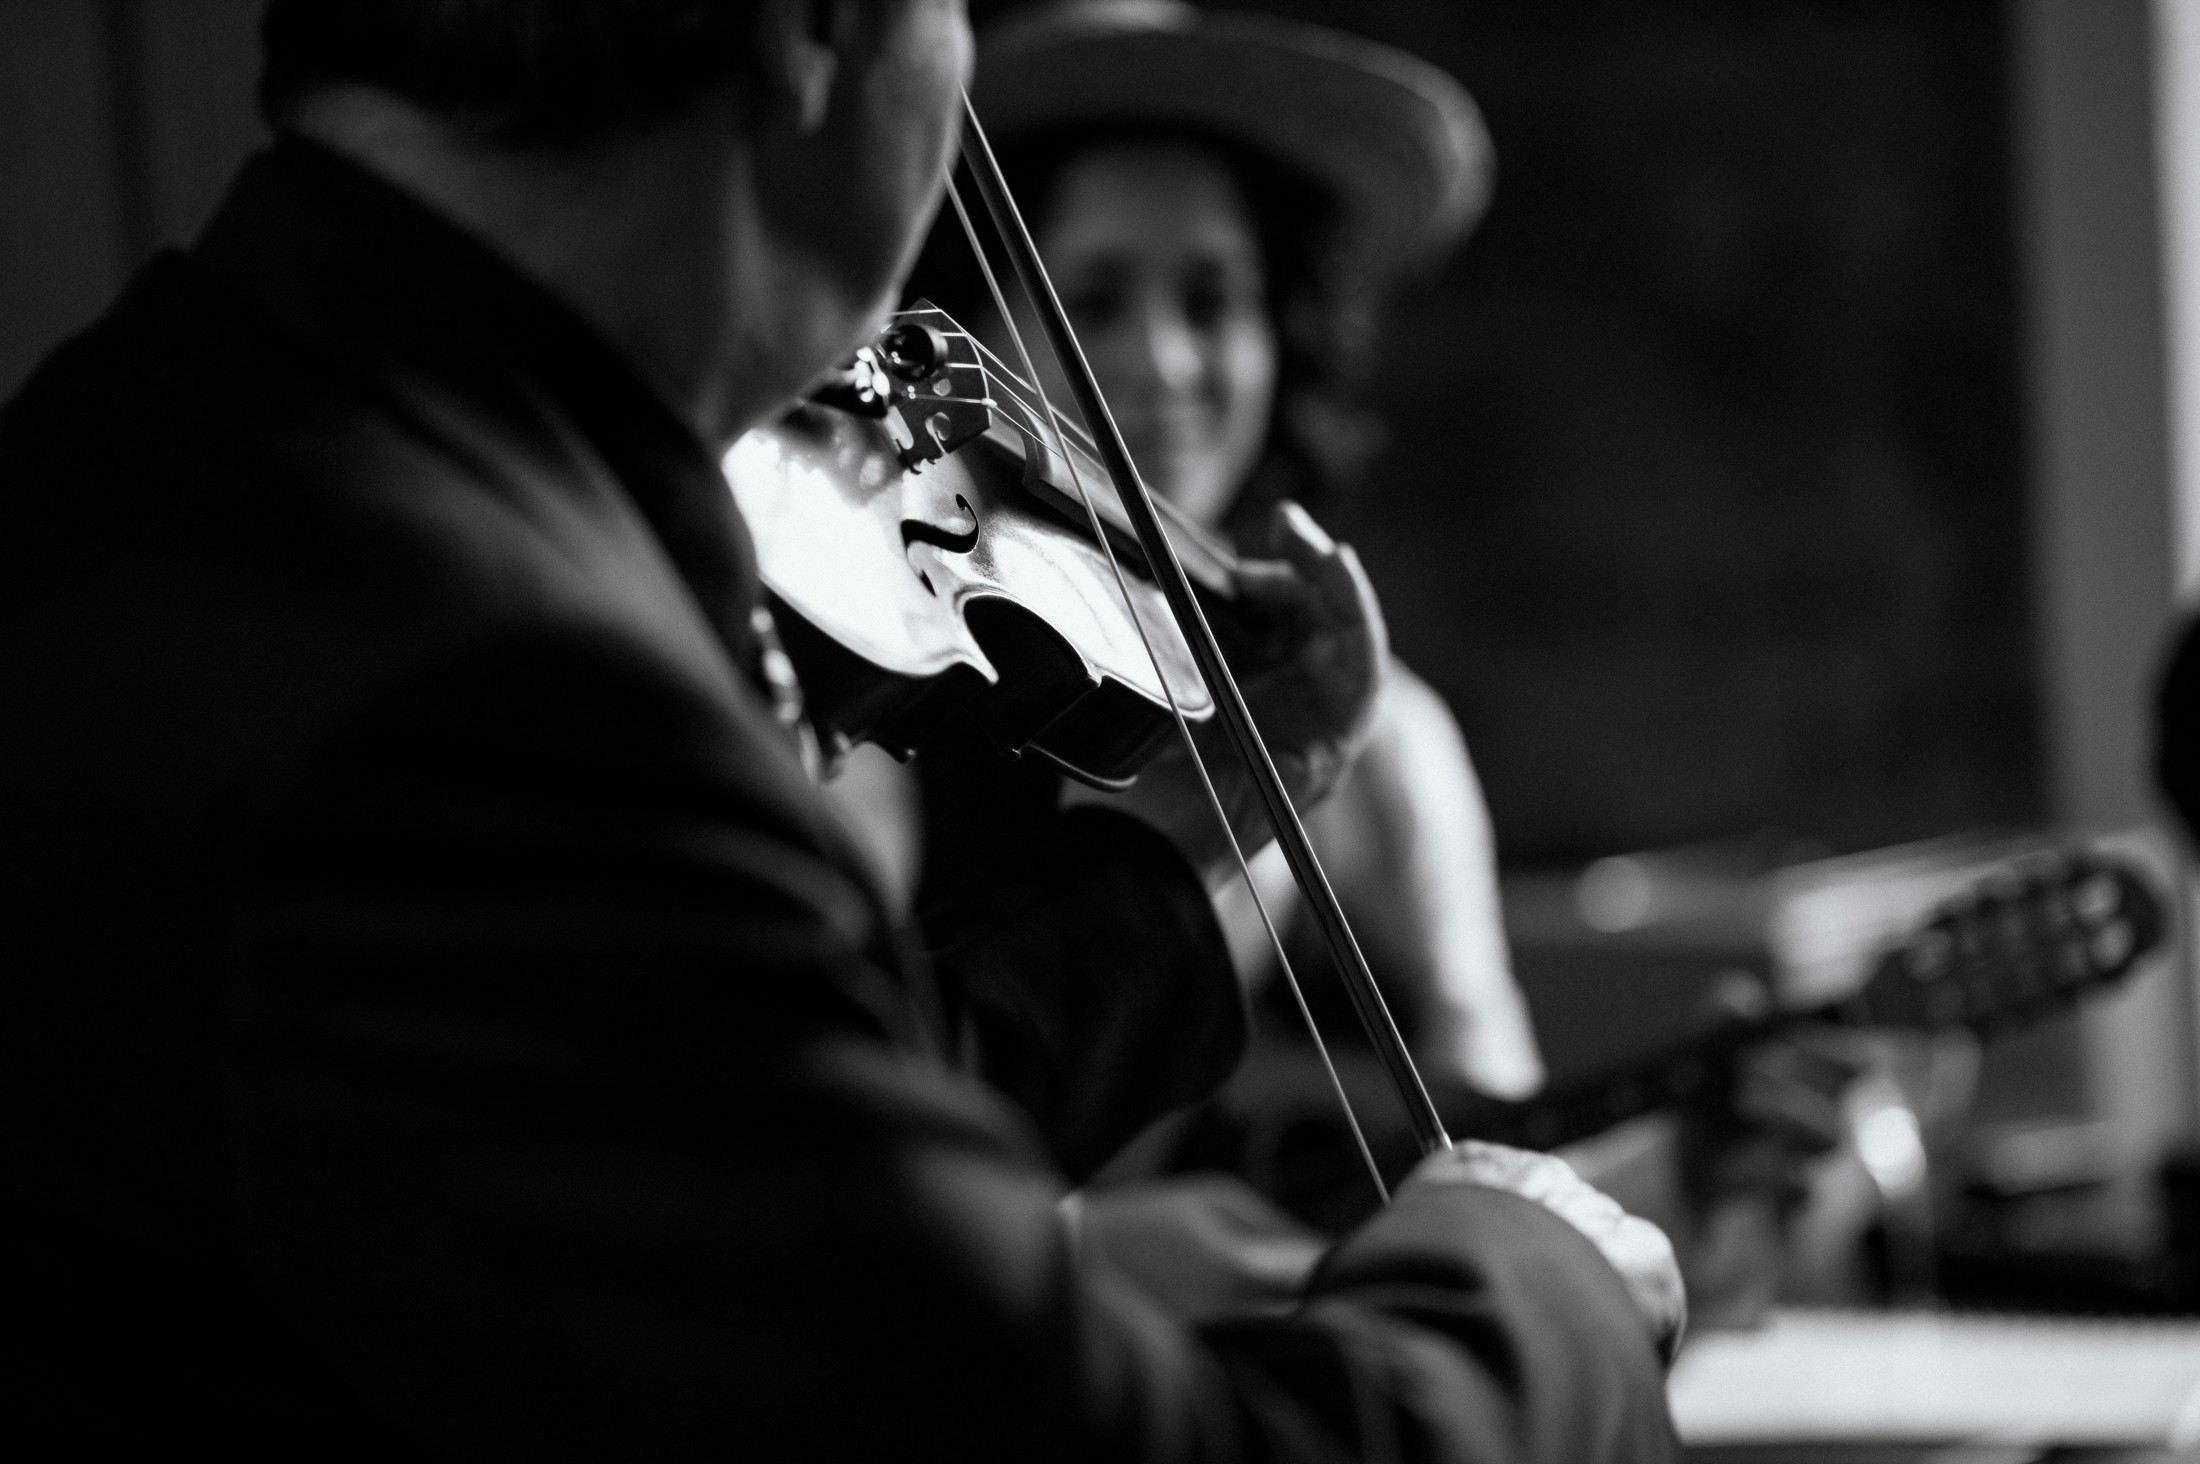 wedding musician playing the violin in black and white florence